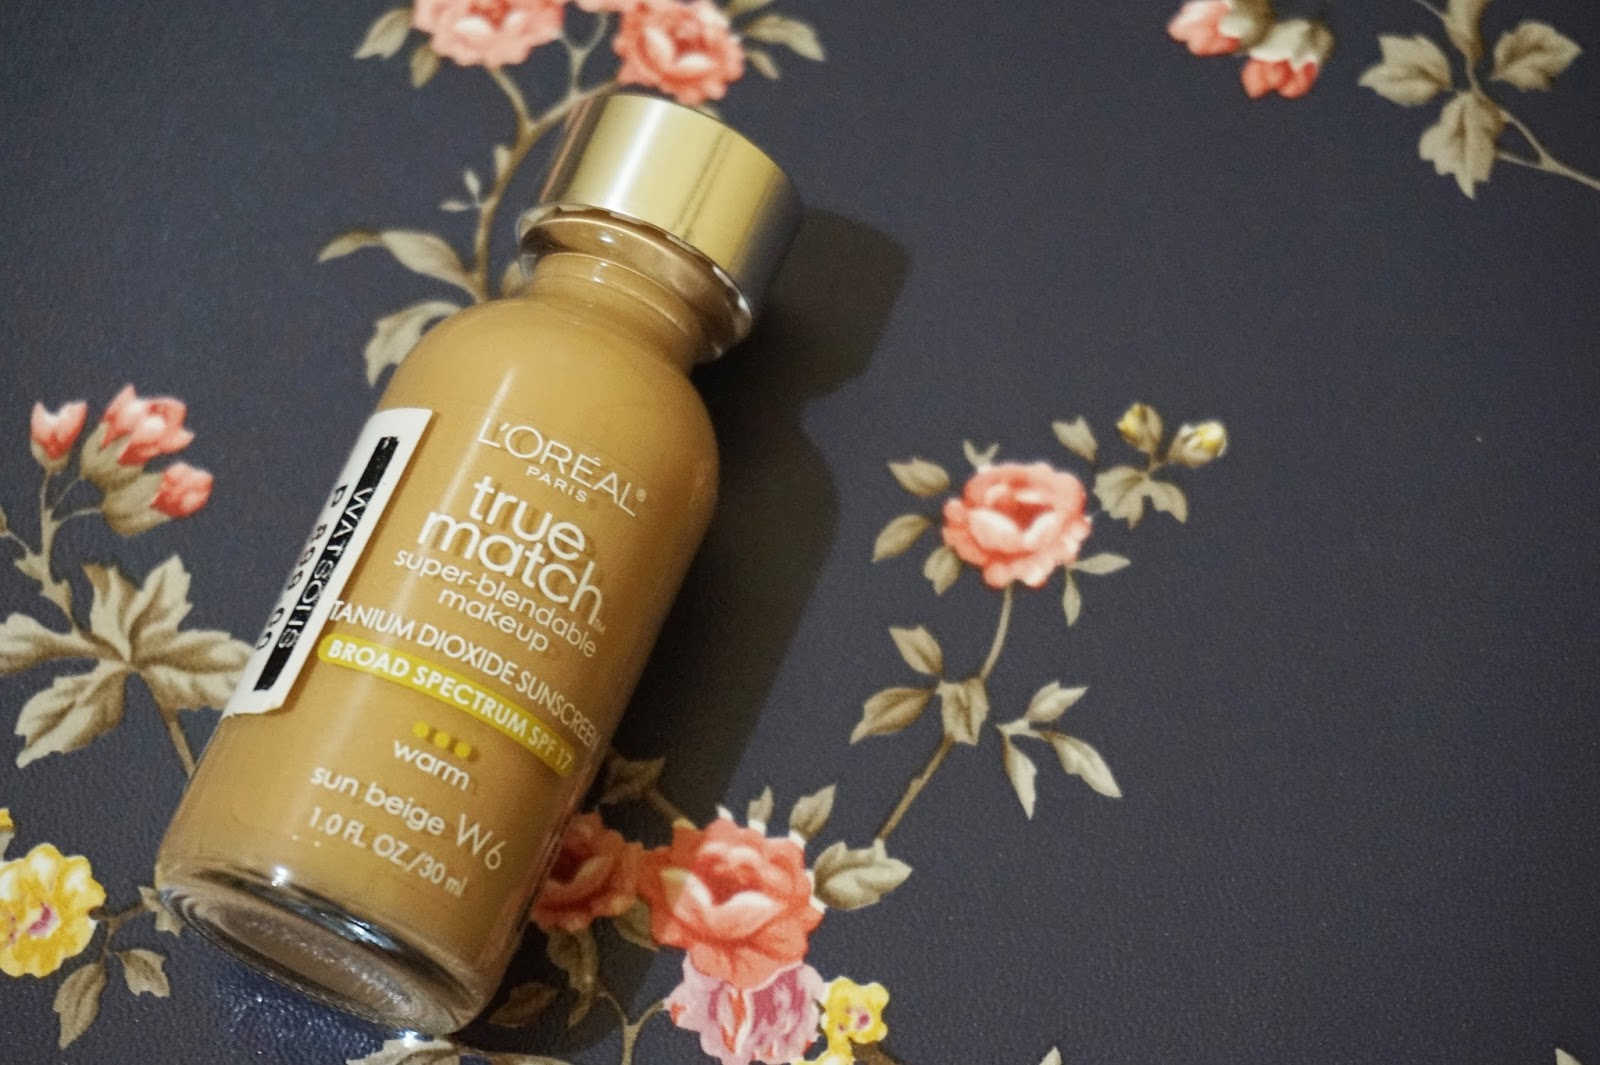 I have oily skin and from what I heard the L'oreal True Match Super Blendable foundation is perfect for oily skin so I'm actually pretty excited to try it ...